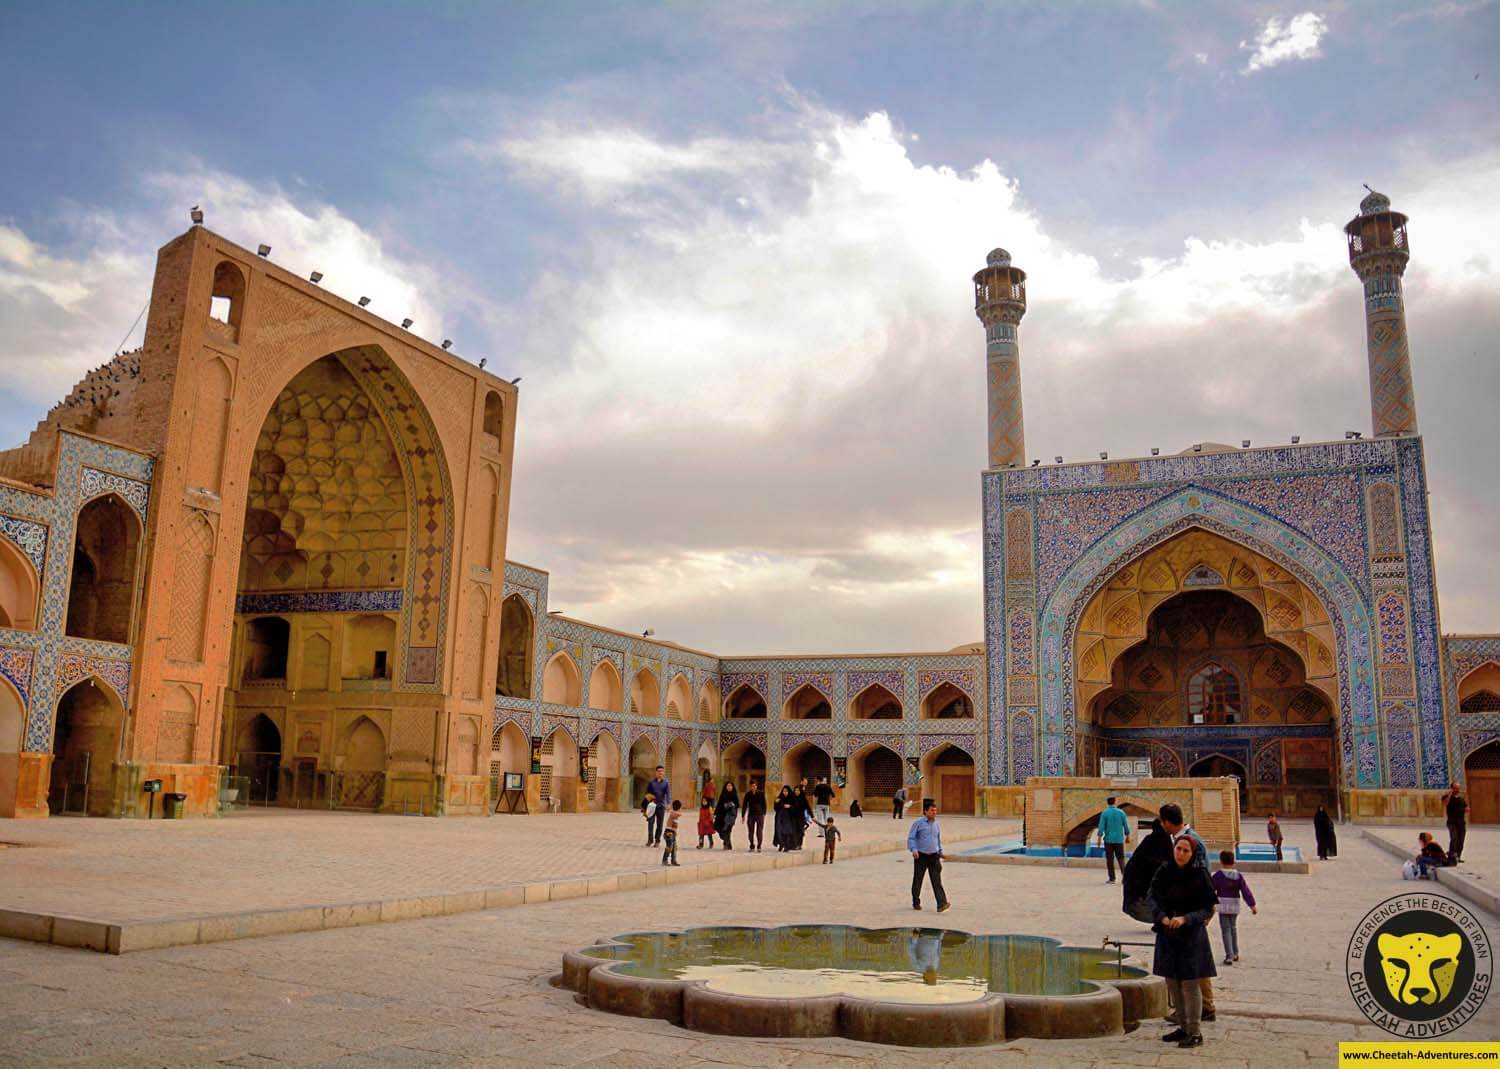 Jameh mosque of Isfahan (Masjed-e Jameh) or Atiq mosque